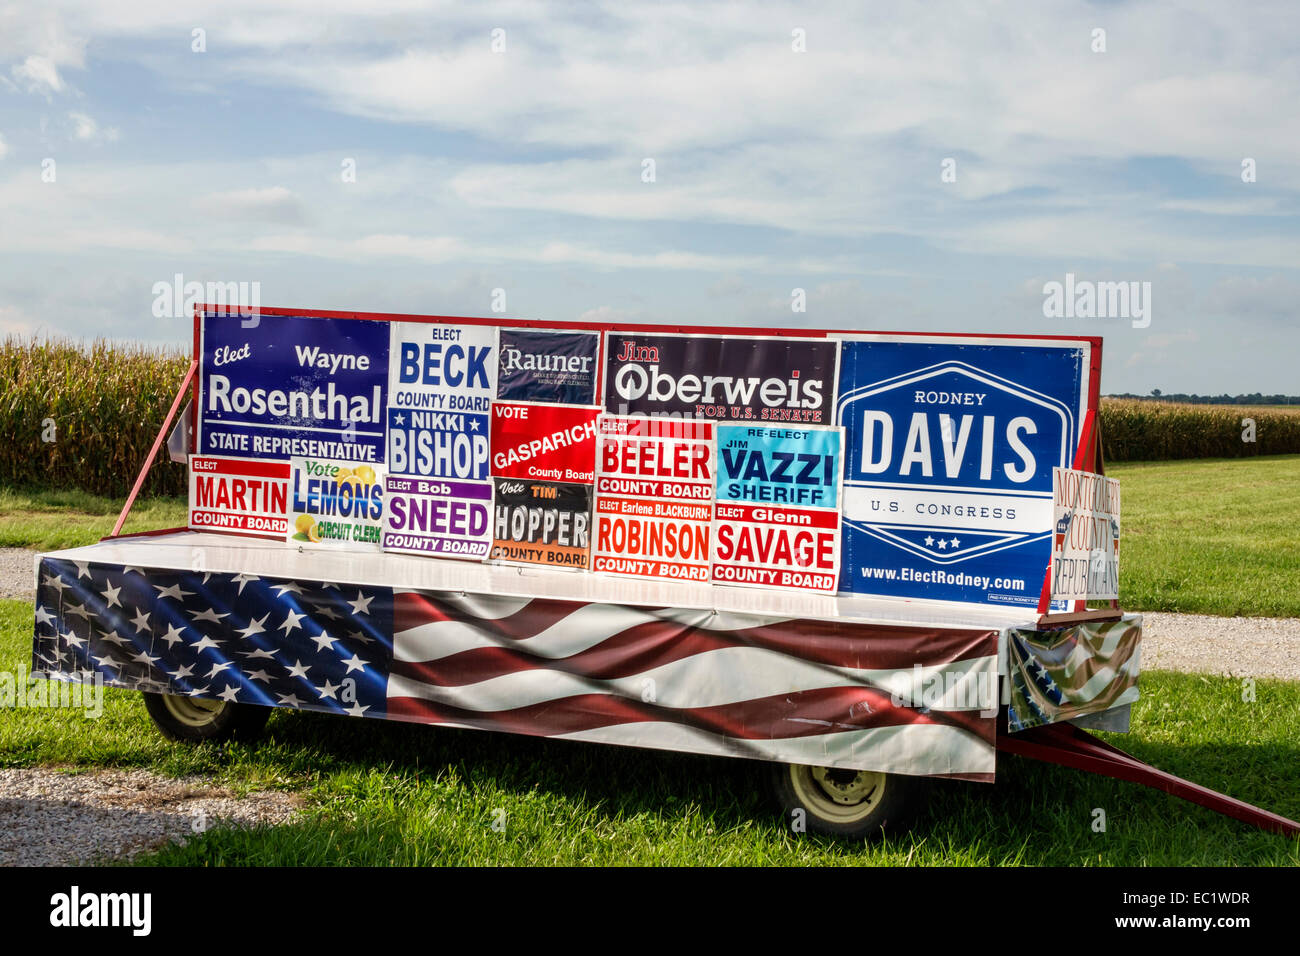 Illinois Waggoner Historic Route 66 corn cornfields rural campaign signs candidates local elections voting politics - Stock Image